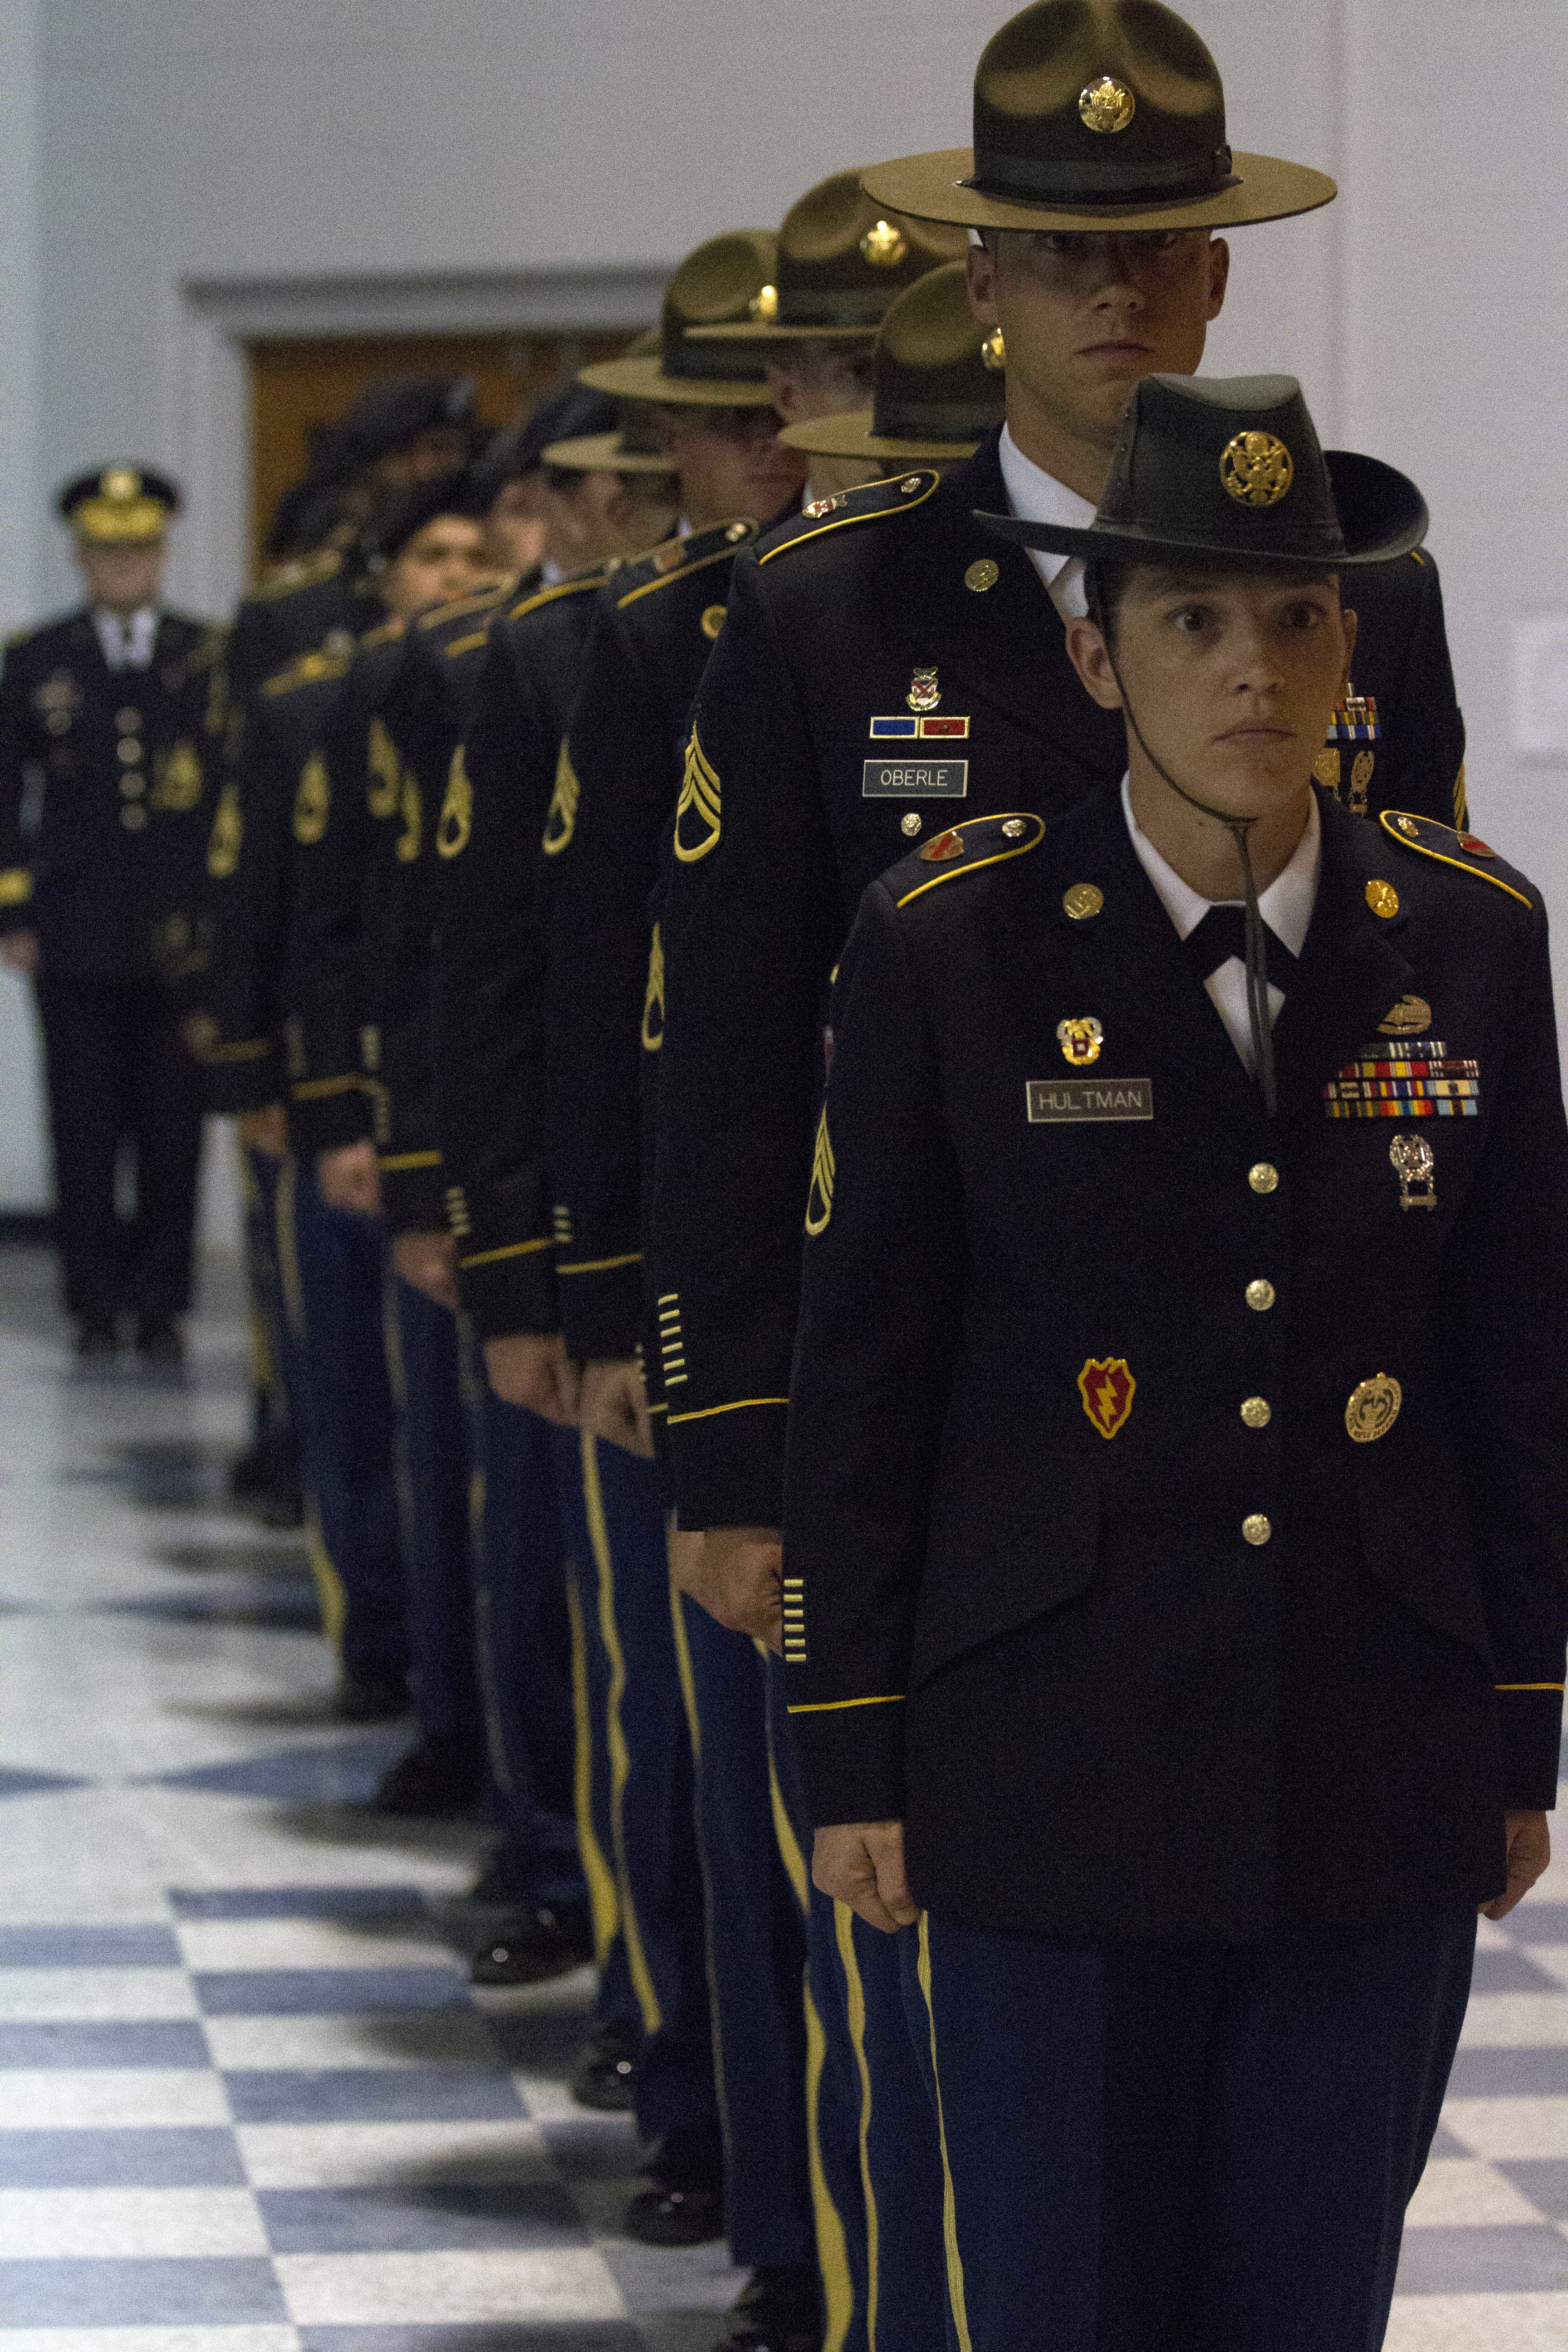 2014 Drill Sergeant of the Year News/Media Slideshow | Article | The United States Army